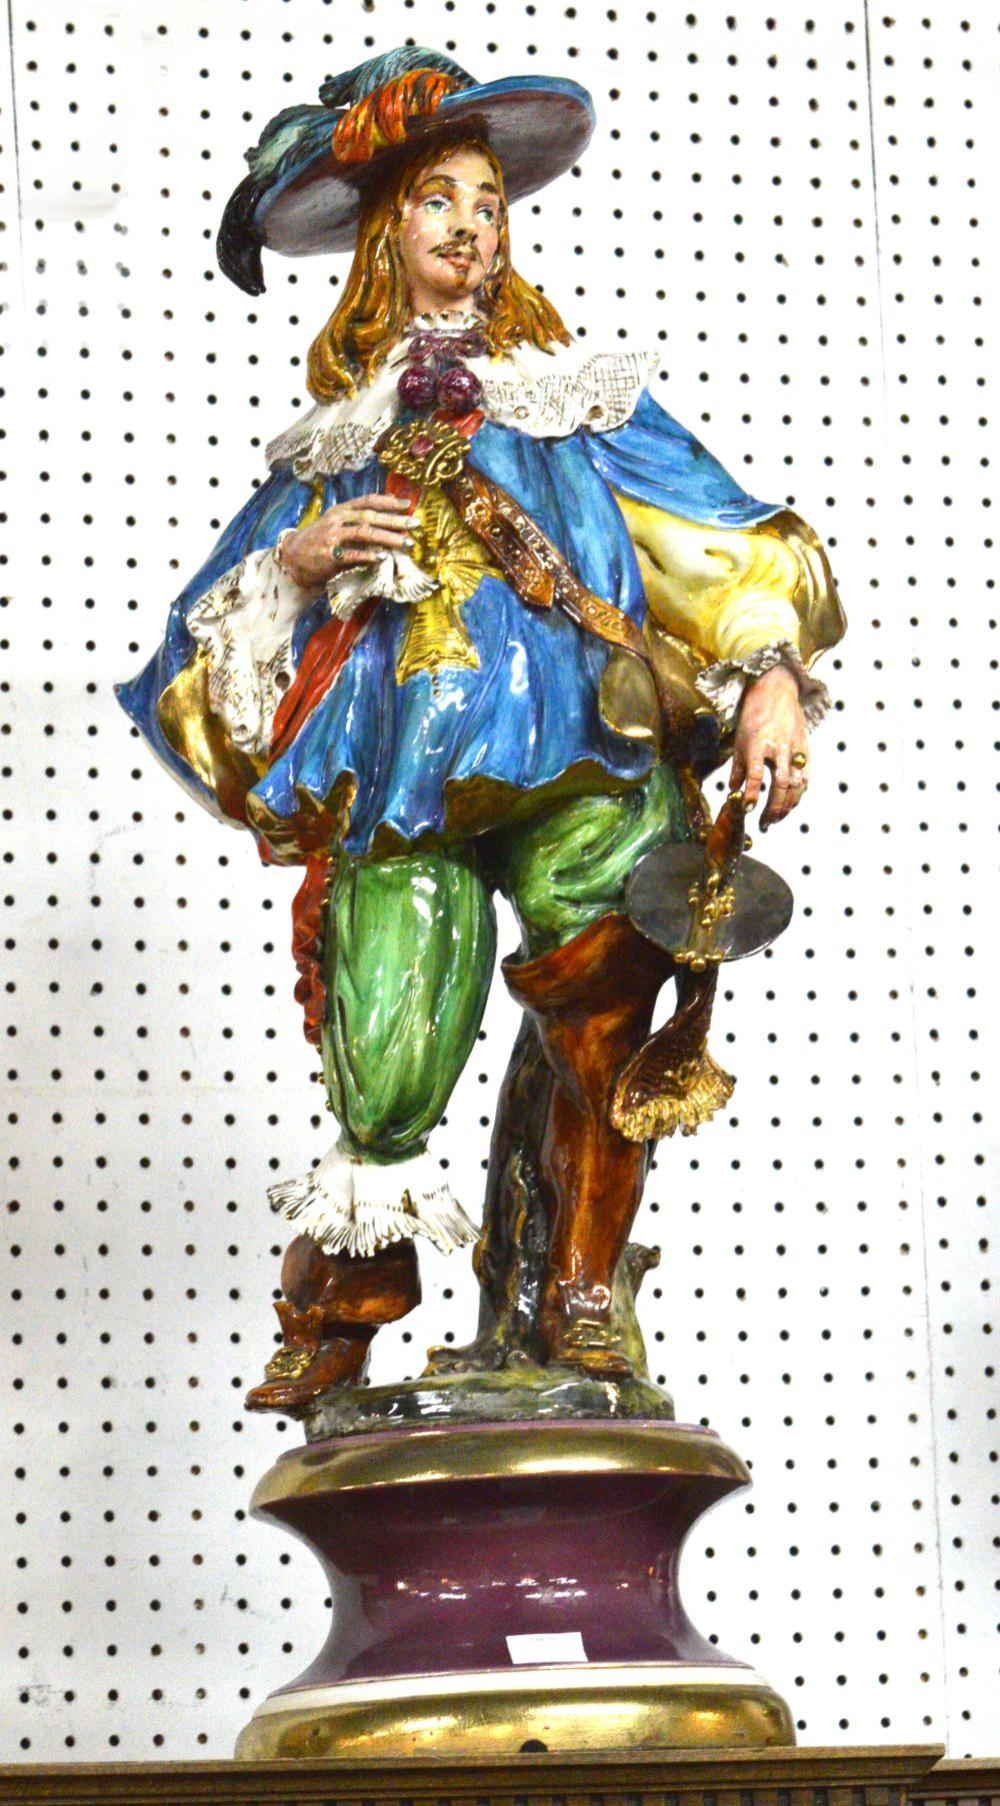 Porcelain musketeer figure